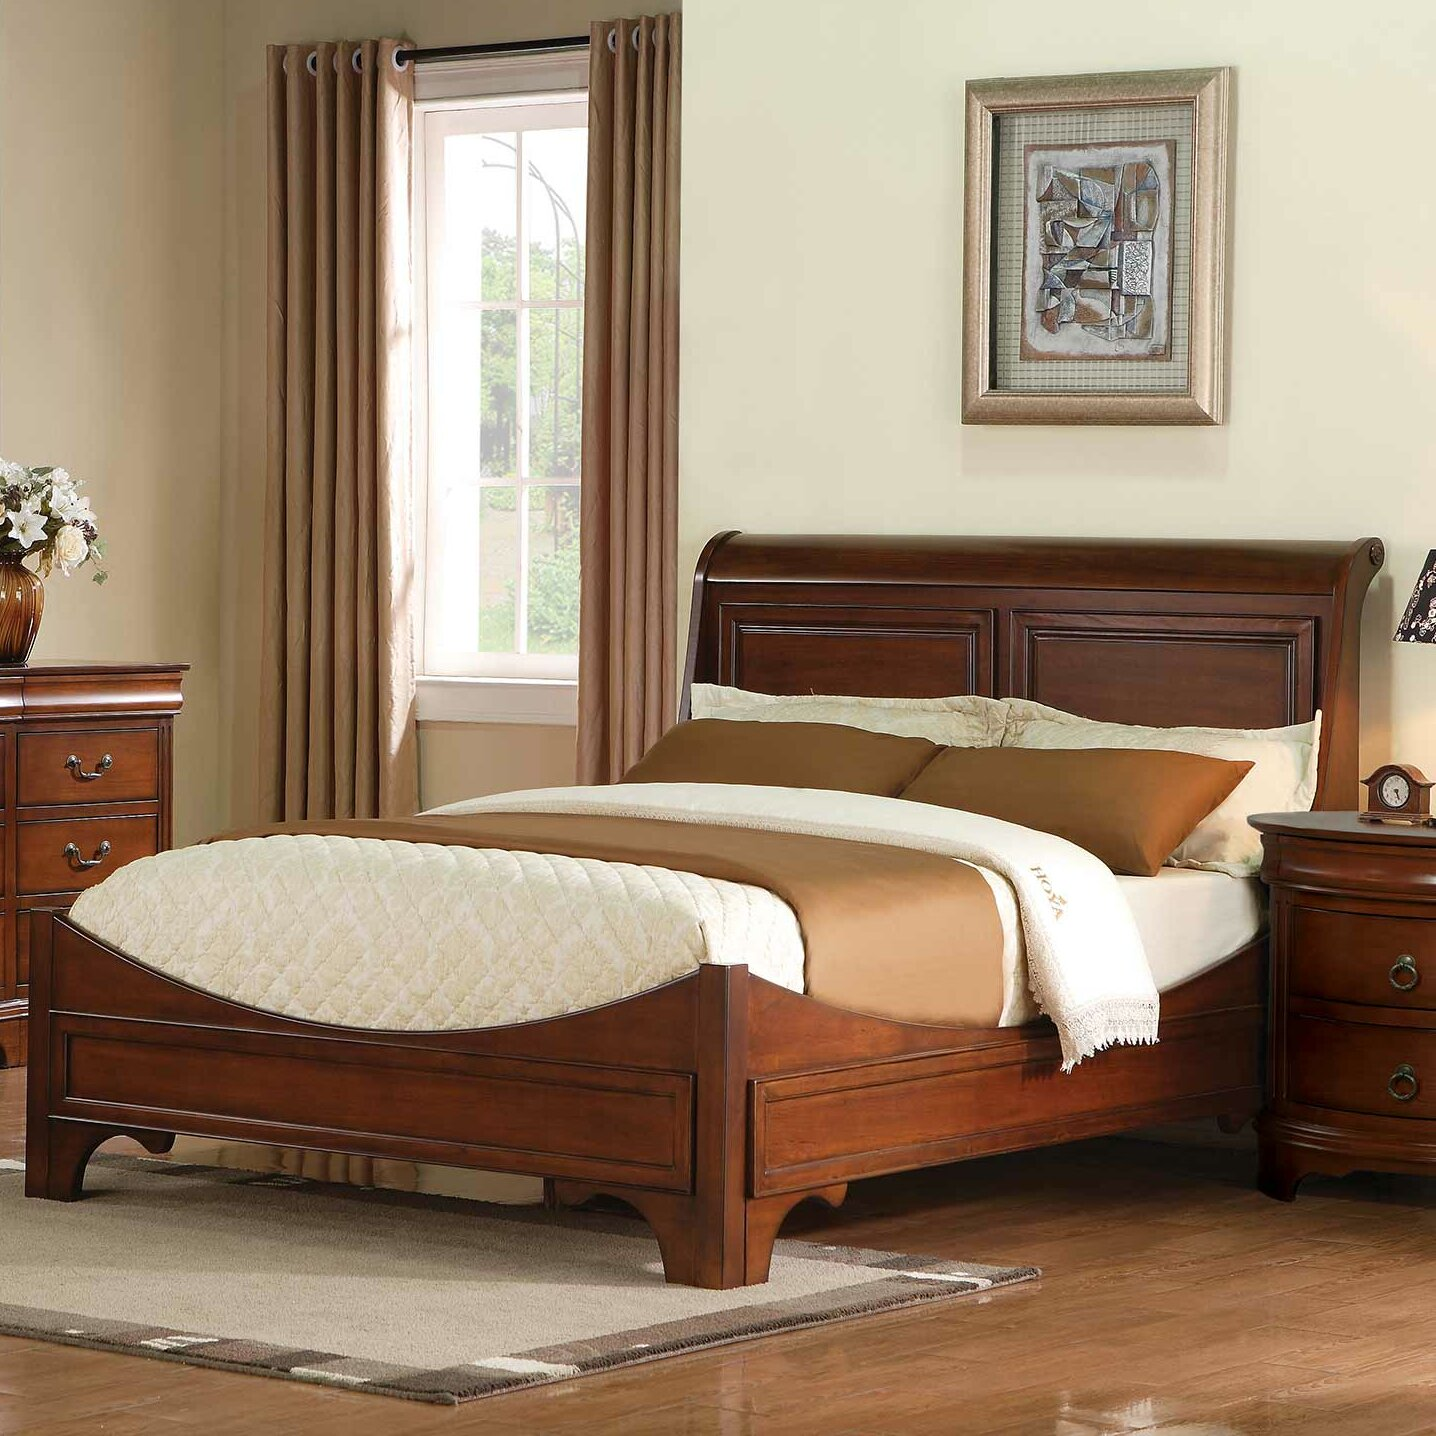 Christmas Tree Shop Poughkeepsie Ny: Darby Home Co Riegel Panel Bed & Reviews